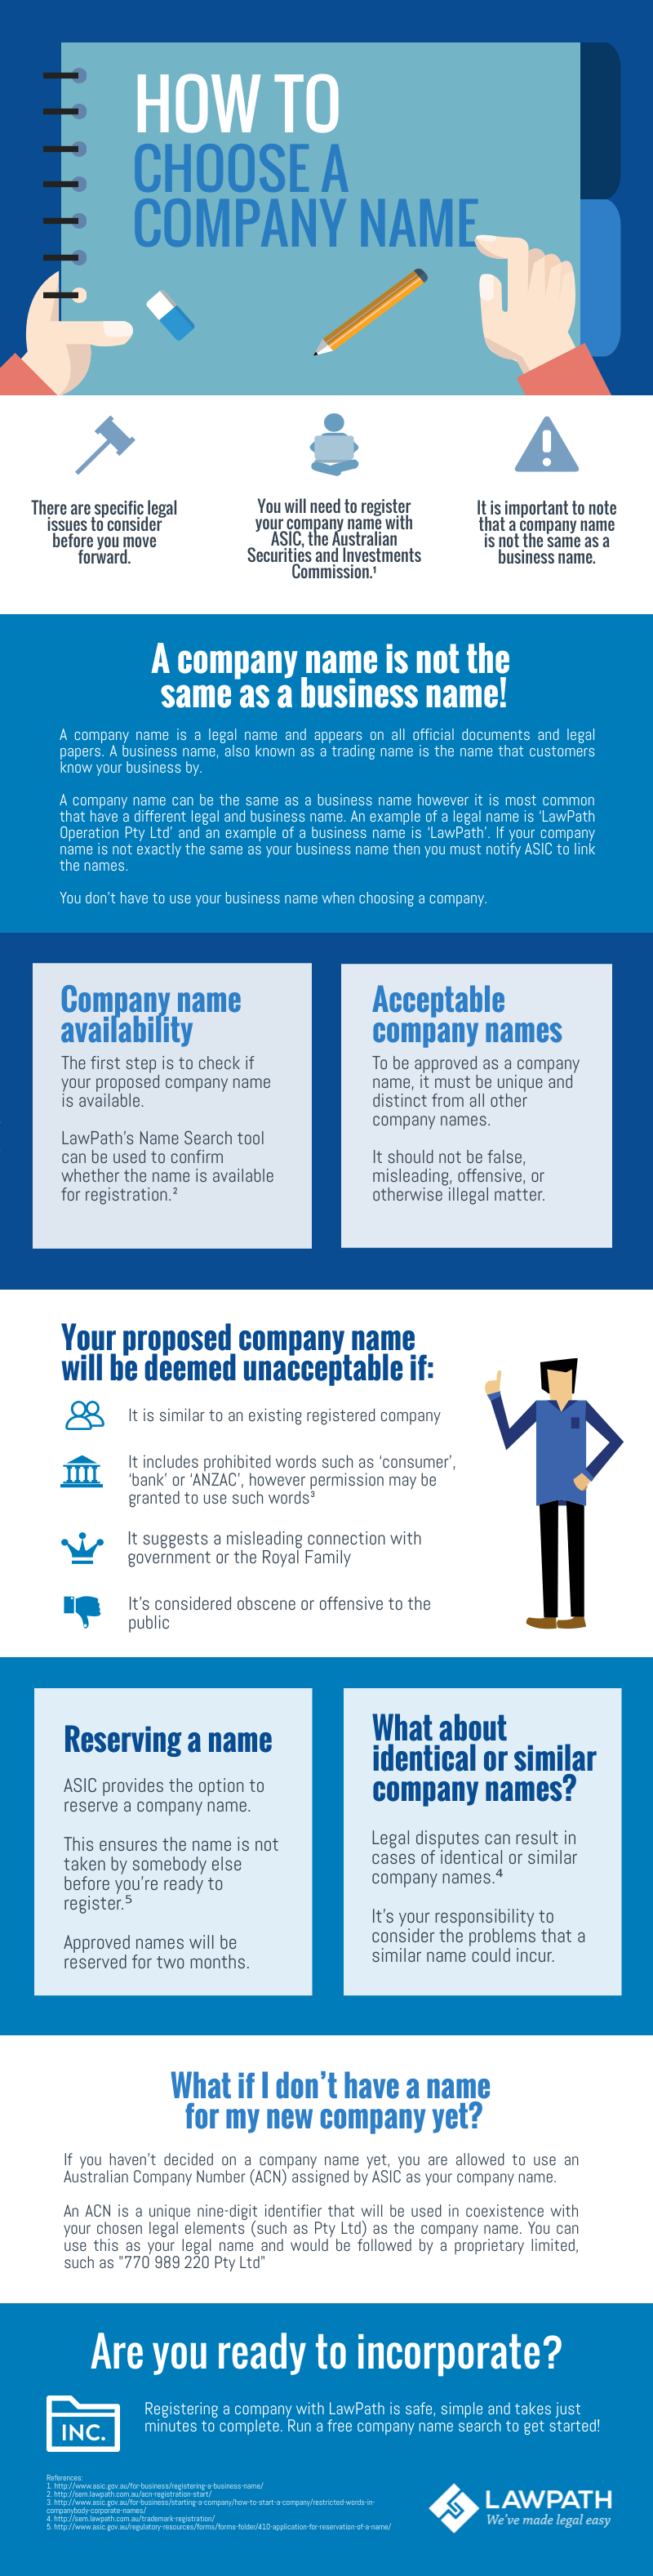 LawPath Infographic How to choose a company name